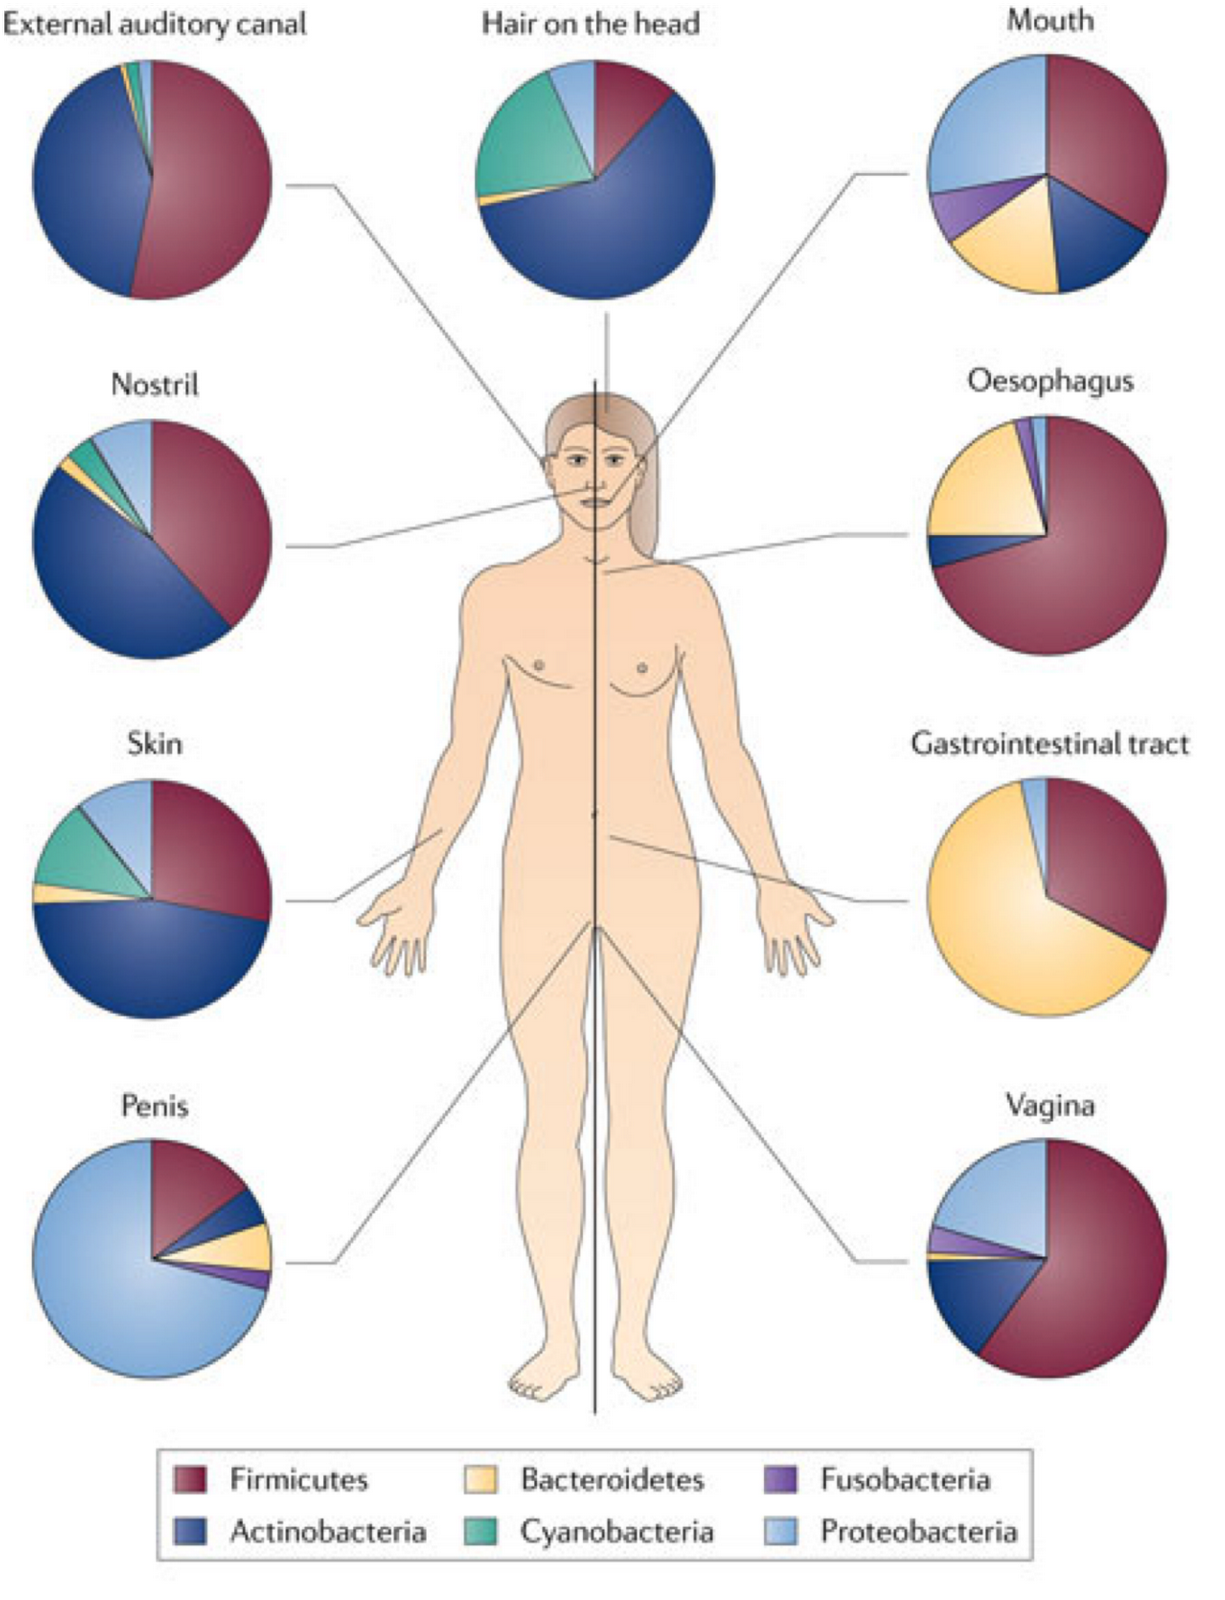 the human microbiome project biology essay One of the main goals of the hmp was to create a baseline view of the healthy human microbiome 2012 plos computational biology data human microbiome project.